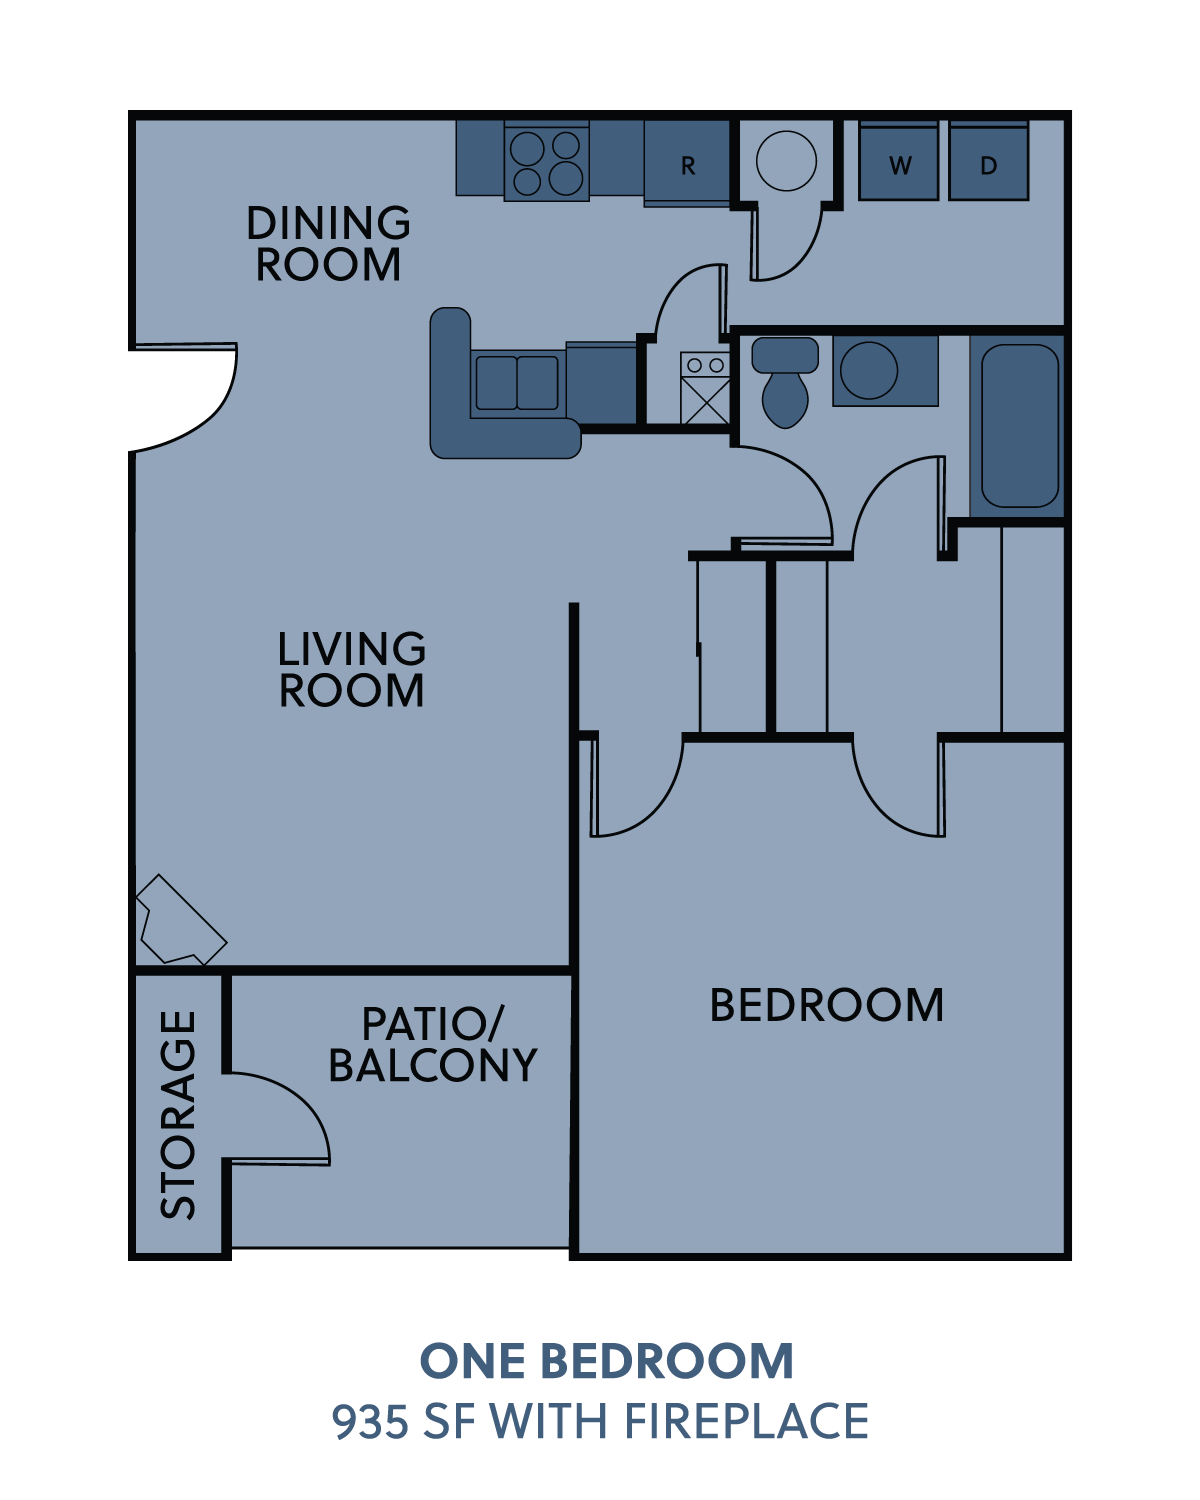 1 bedroom with fireplace